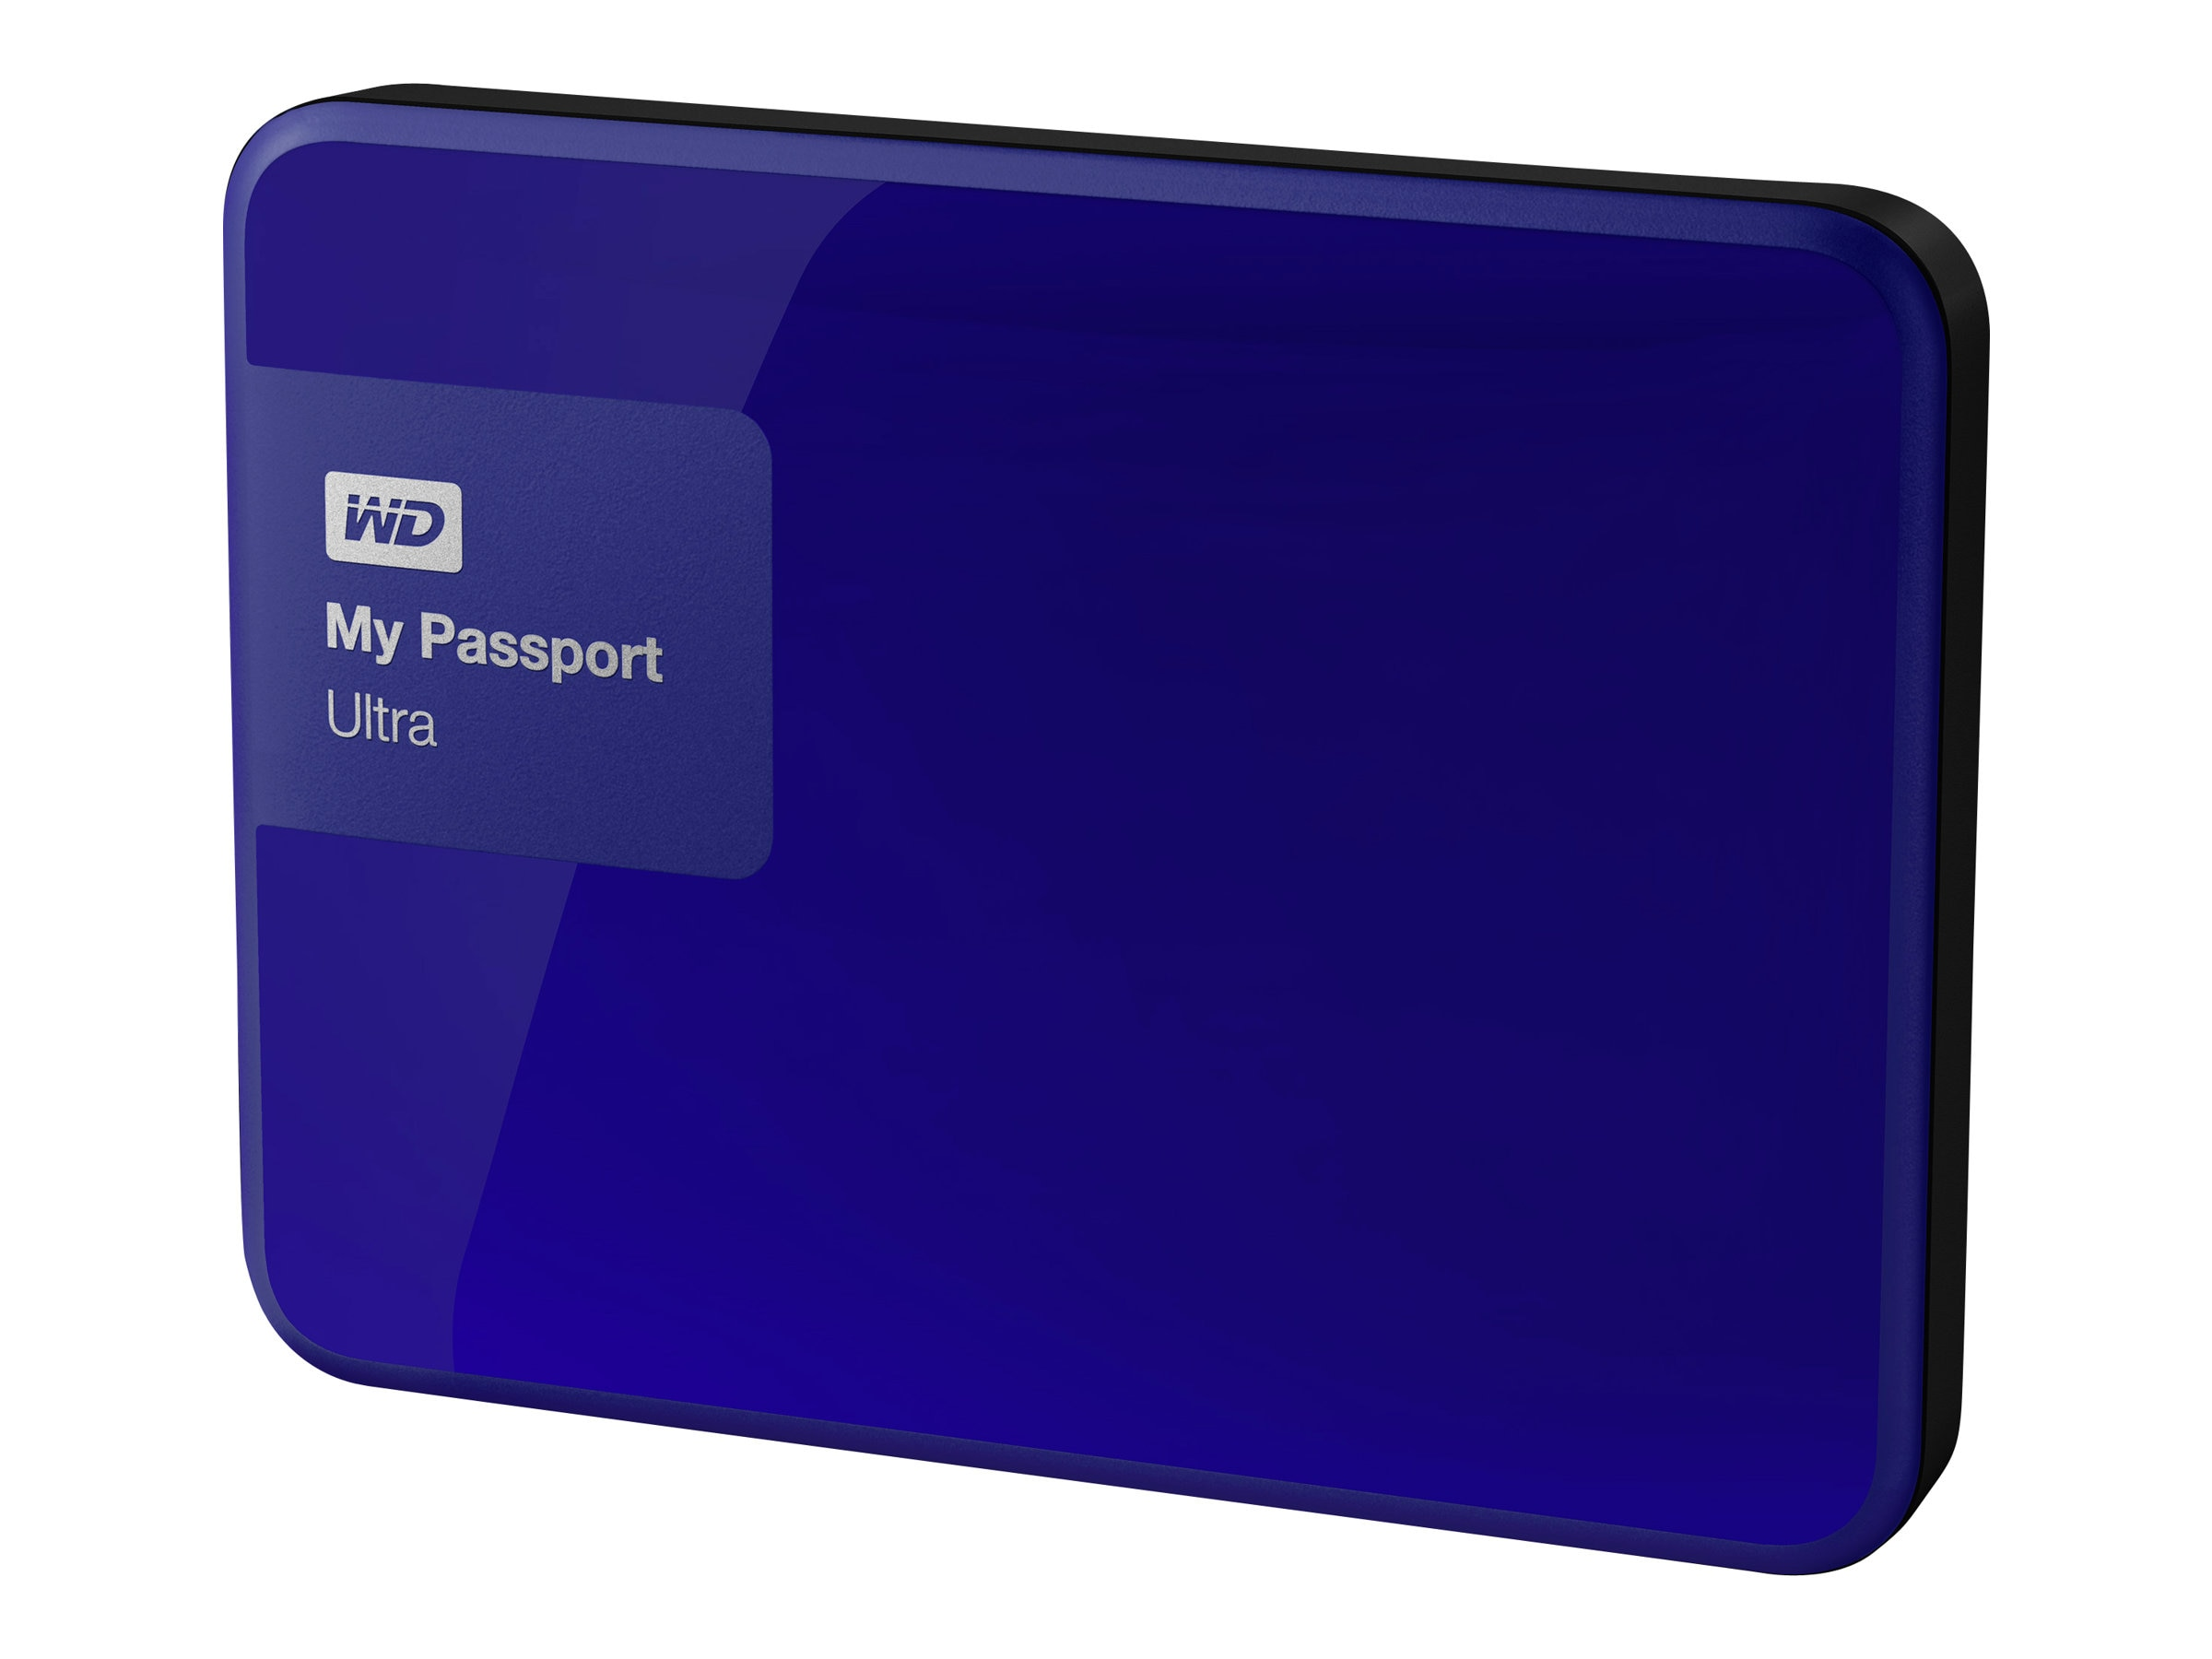 WD 500GB My Passport Ultra Portable Hard Drive - Blue, WDBWWM5000ABL-NESN, 21089171, Hard Drives - External